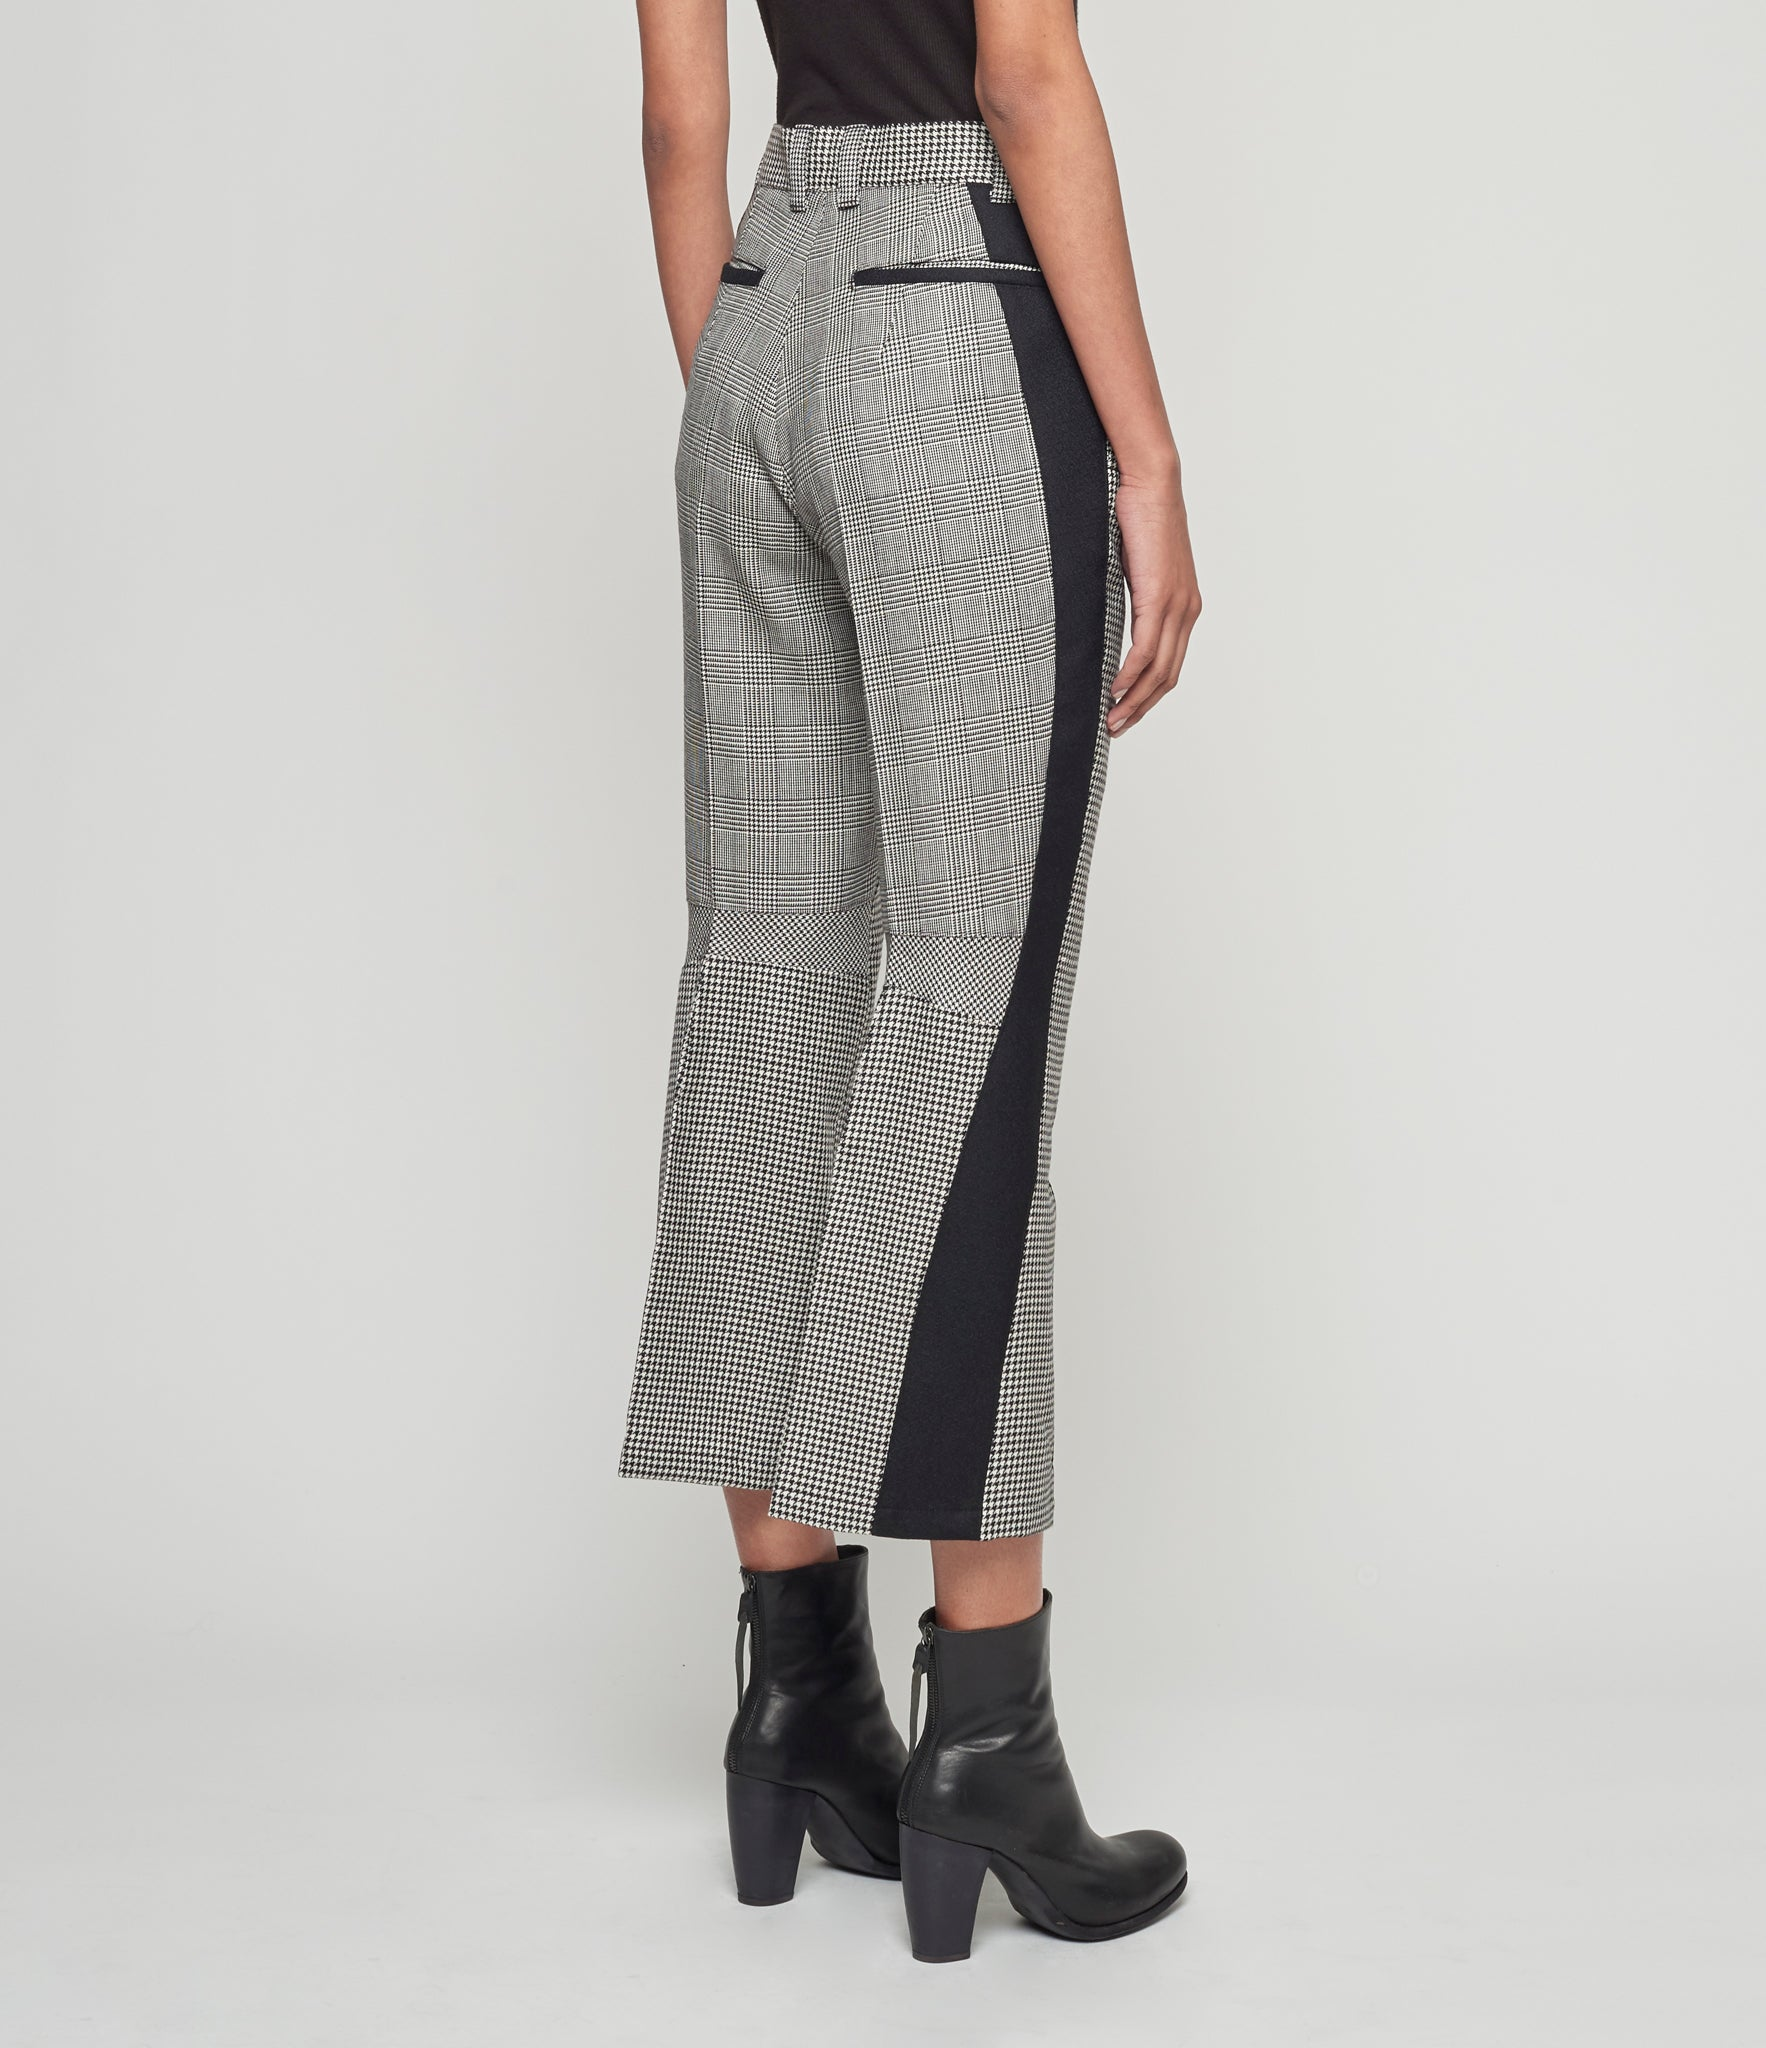 Shiro Sakai Houndstooth Trousers